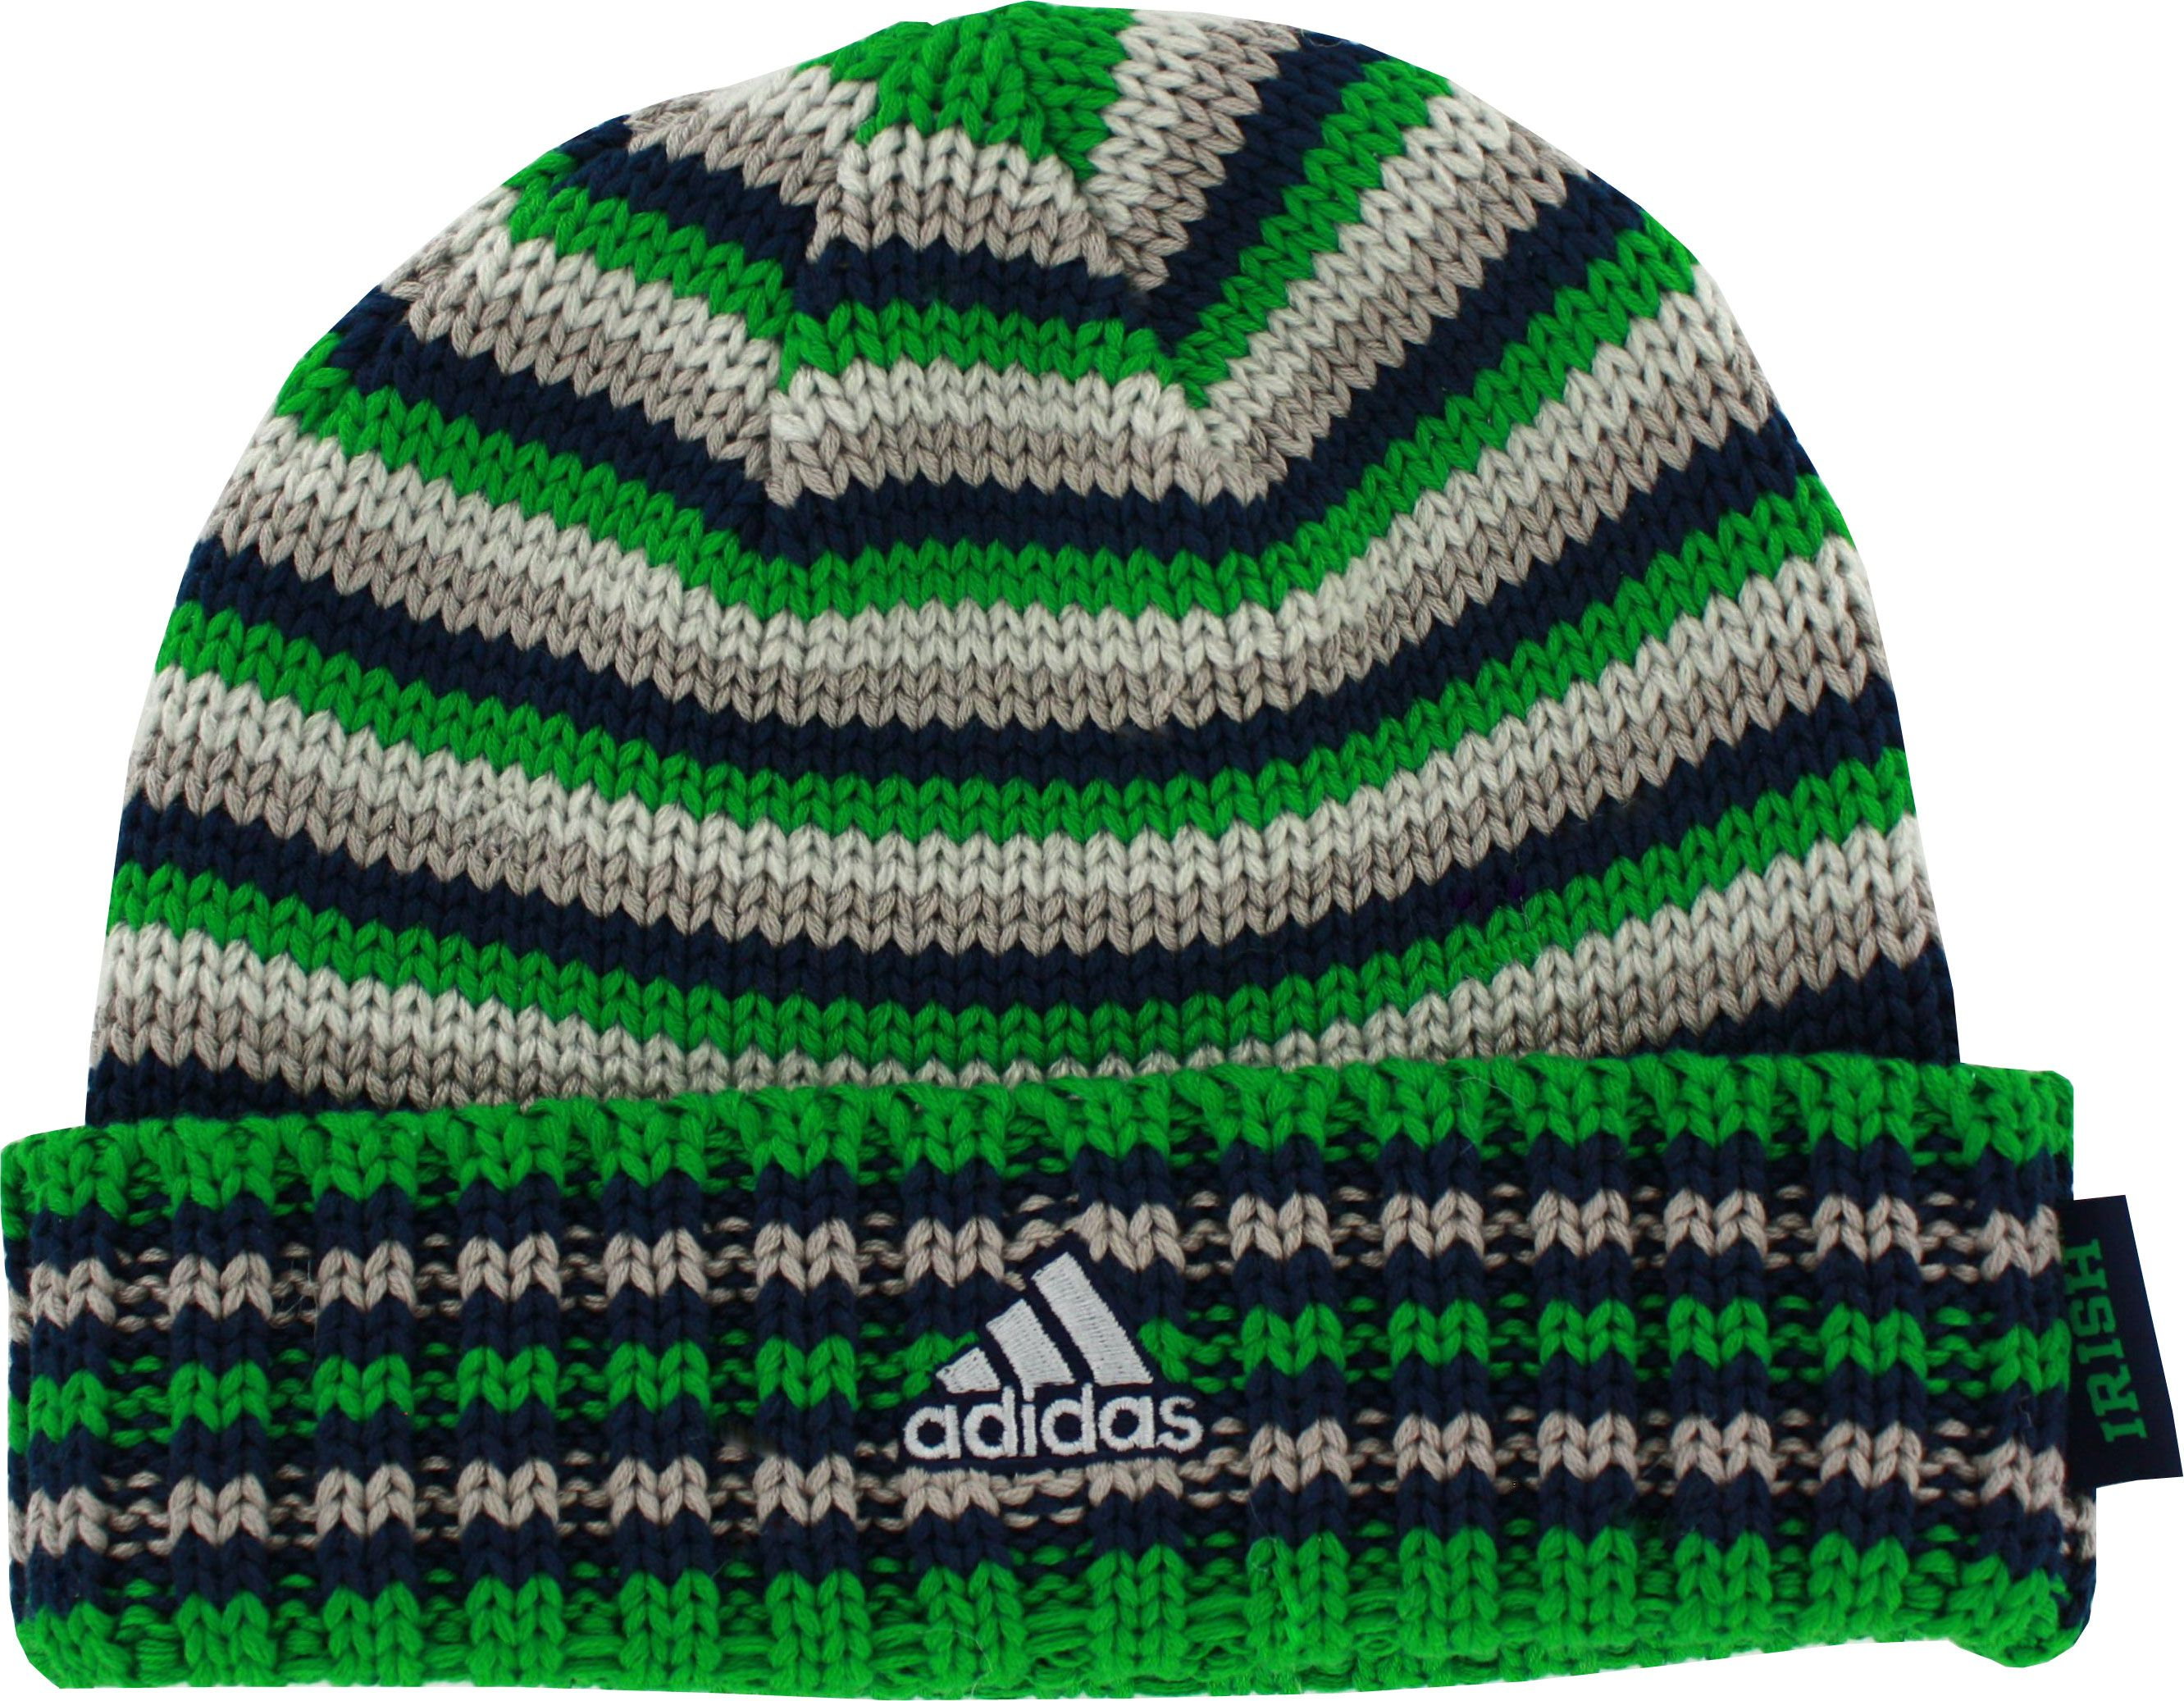 Notre Dame Fighting Irish Cuffed Knit Hat by Sports Licensed Division of The Adidas Group